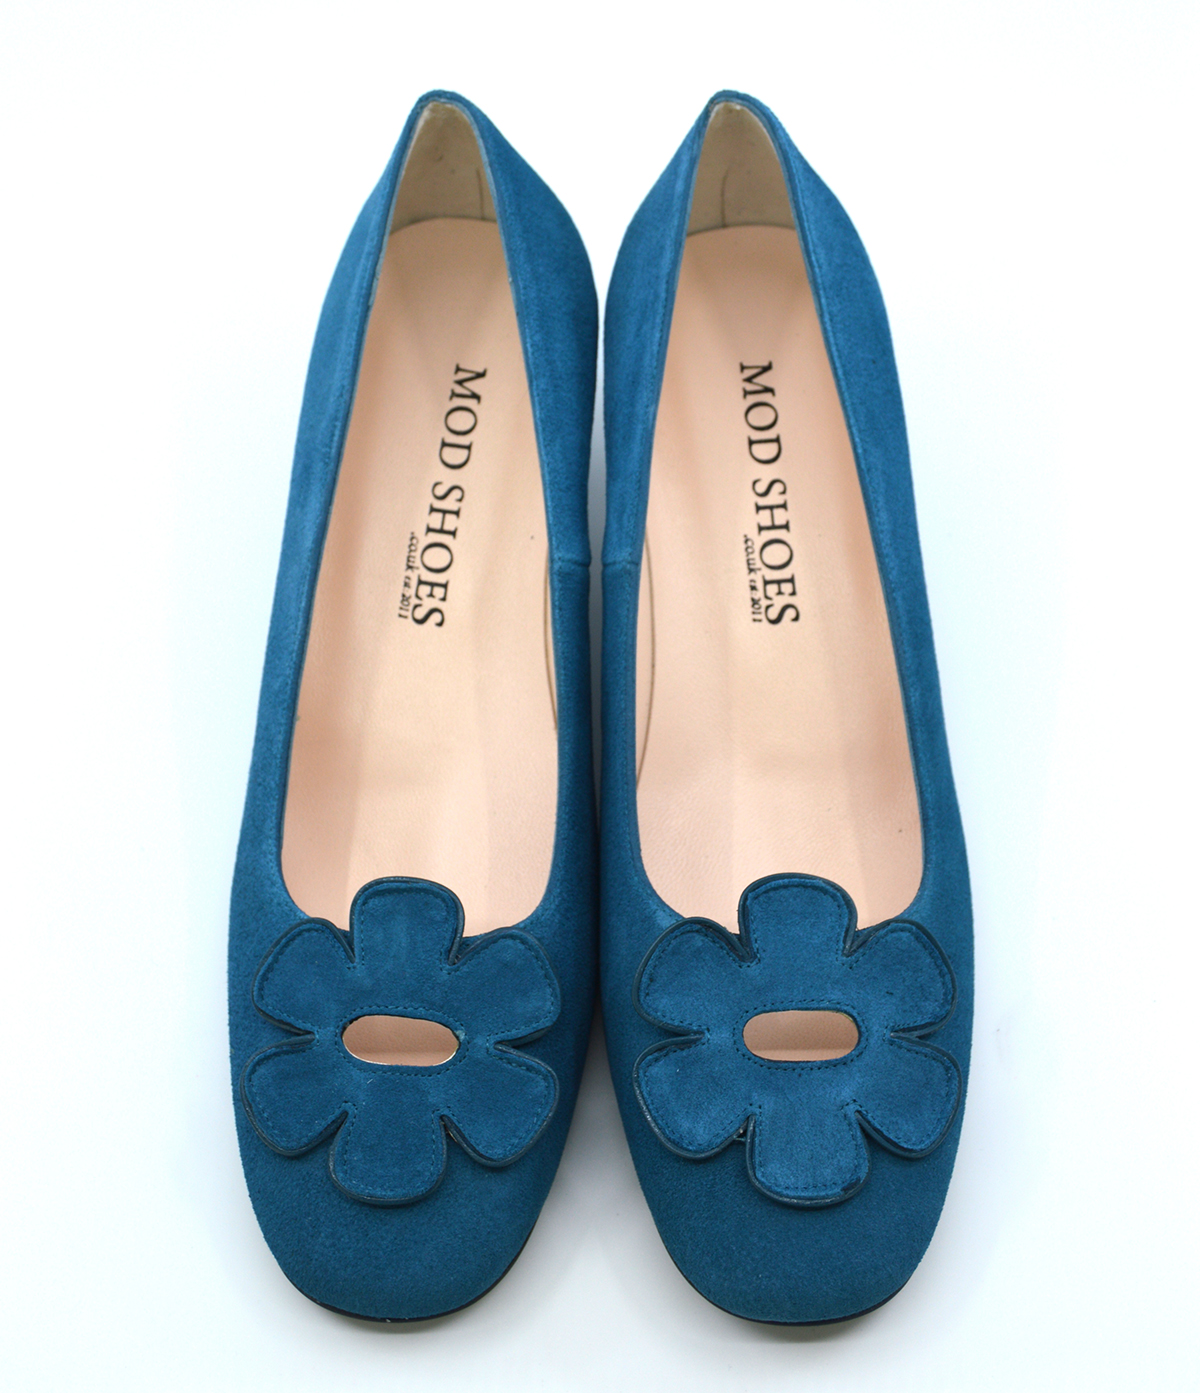 The Fleur Flower Shoes – Teal Suede